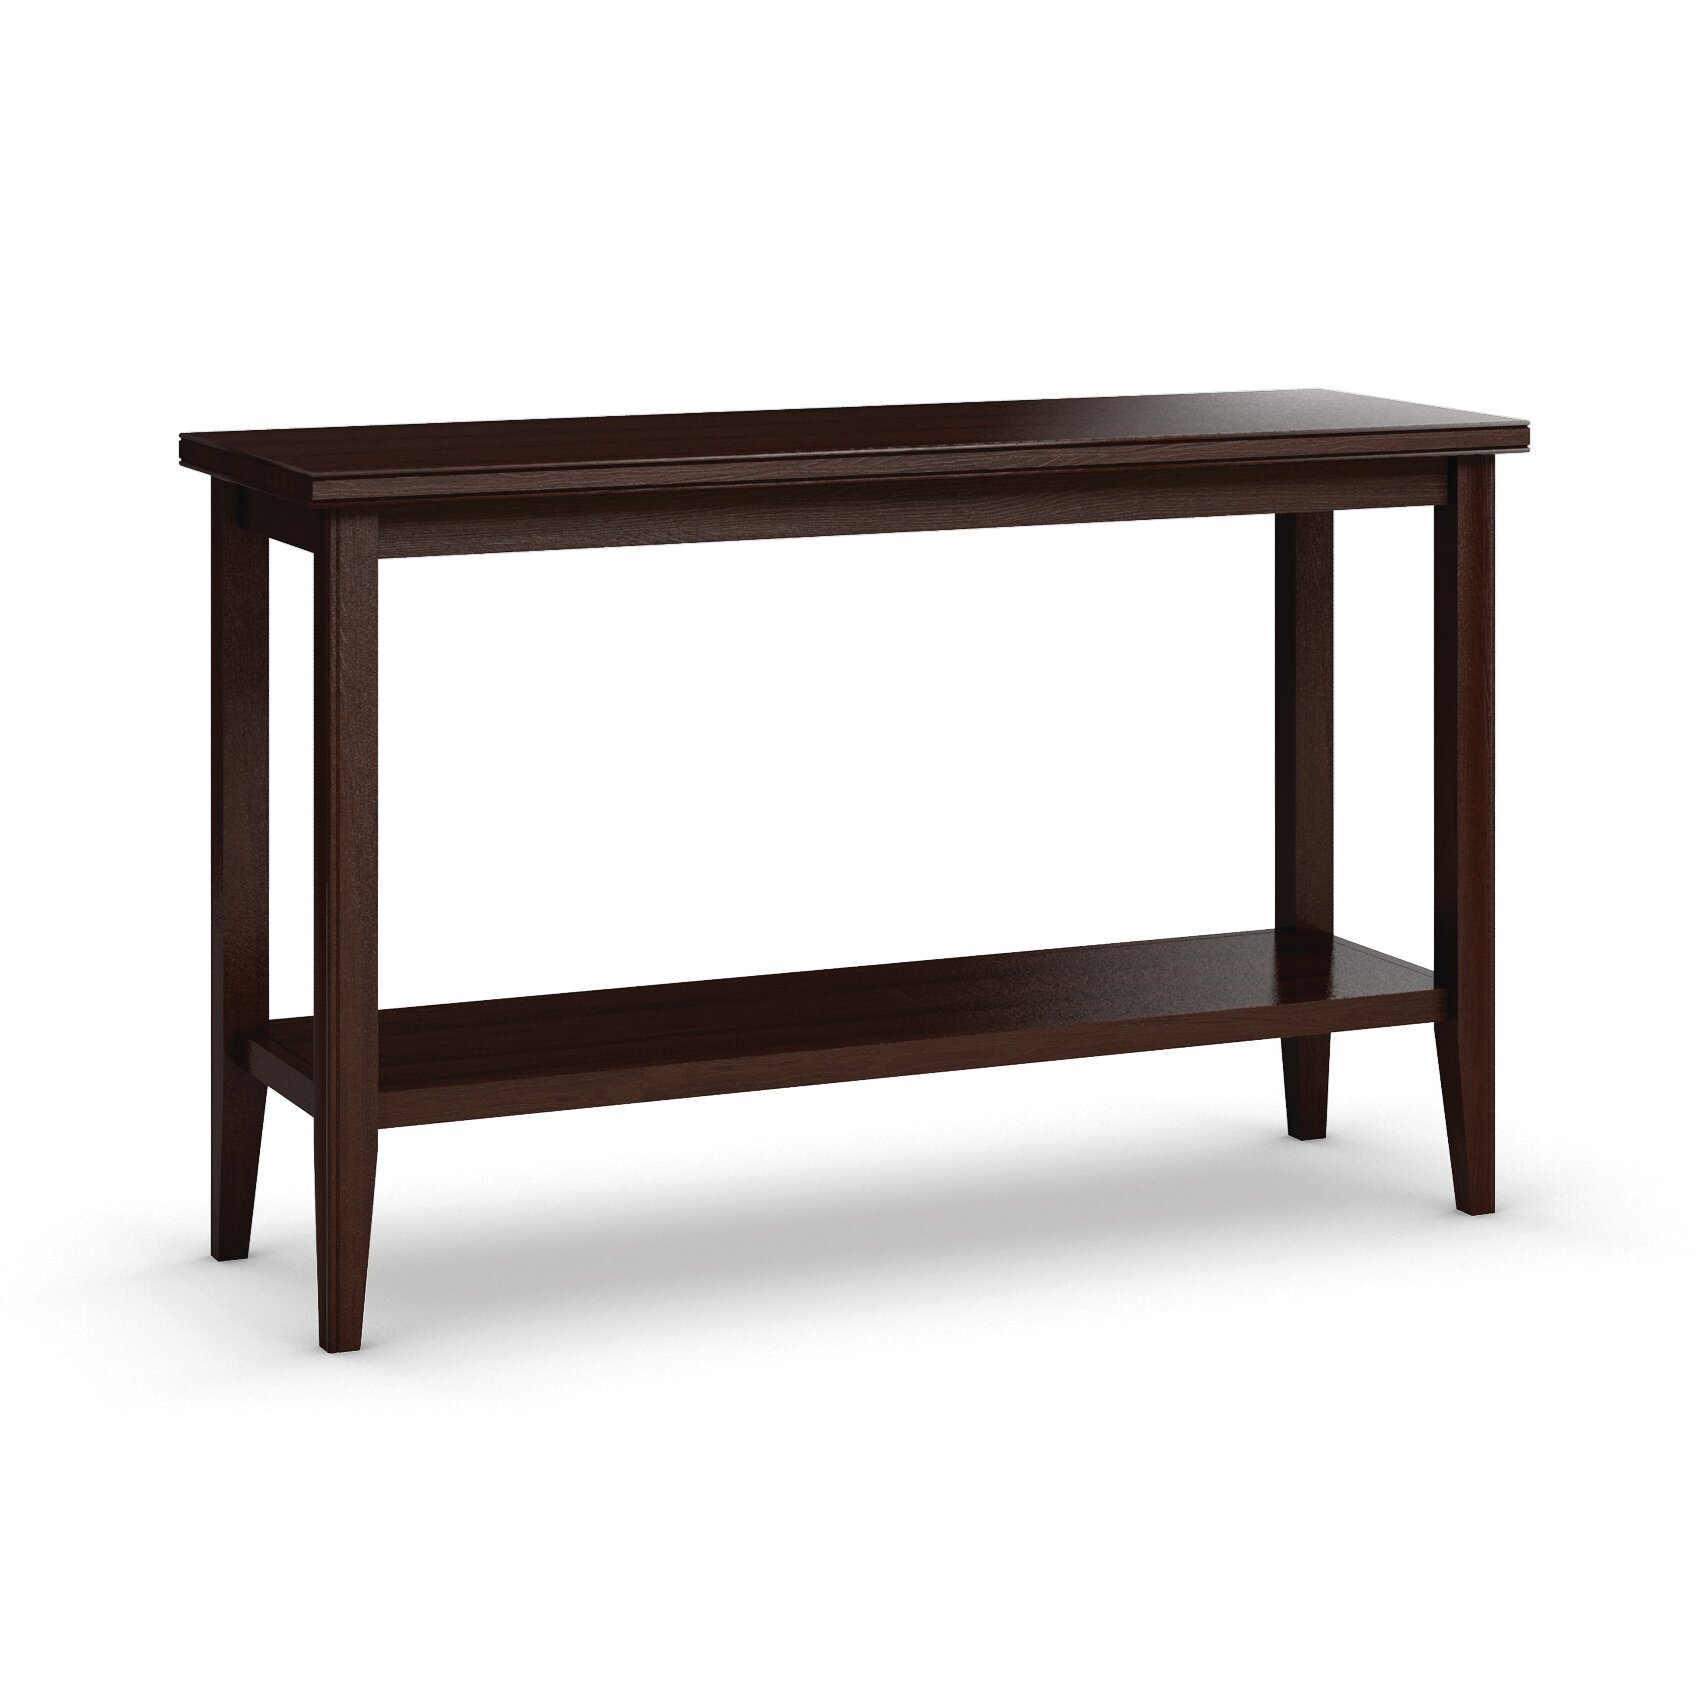 caravel bowery sofa table with shelf reviews wayfair. Black Bedroom Furniture Sets. Home Design Ideas